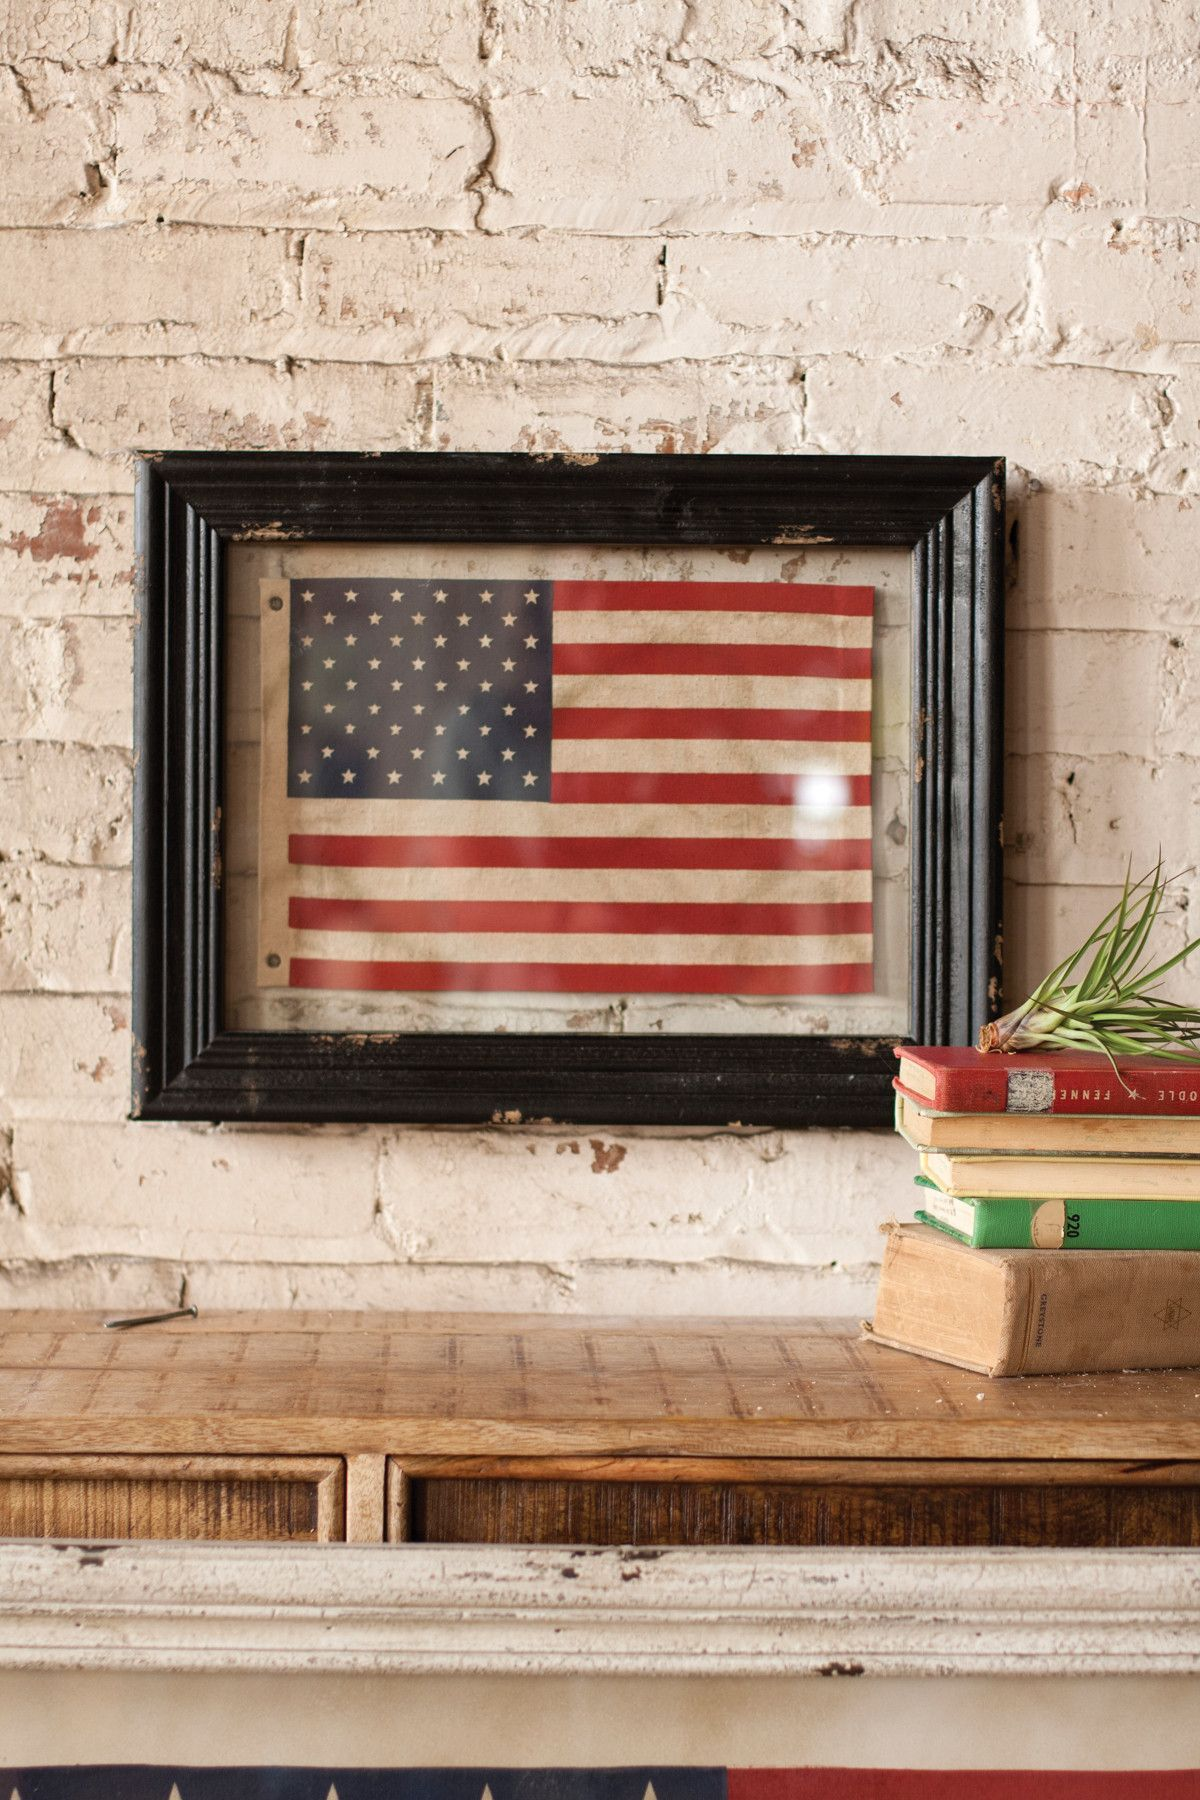 Small Framed American Flag Under Glass Framed American